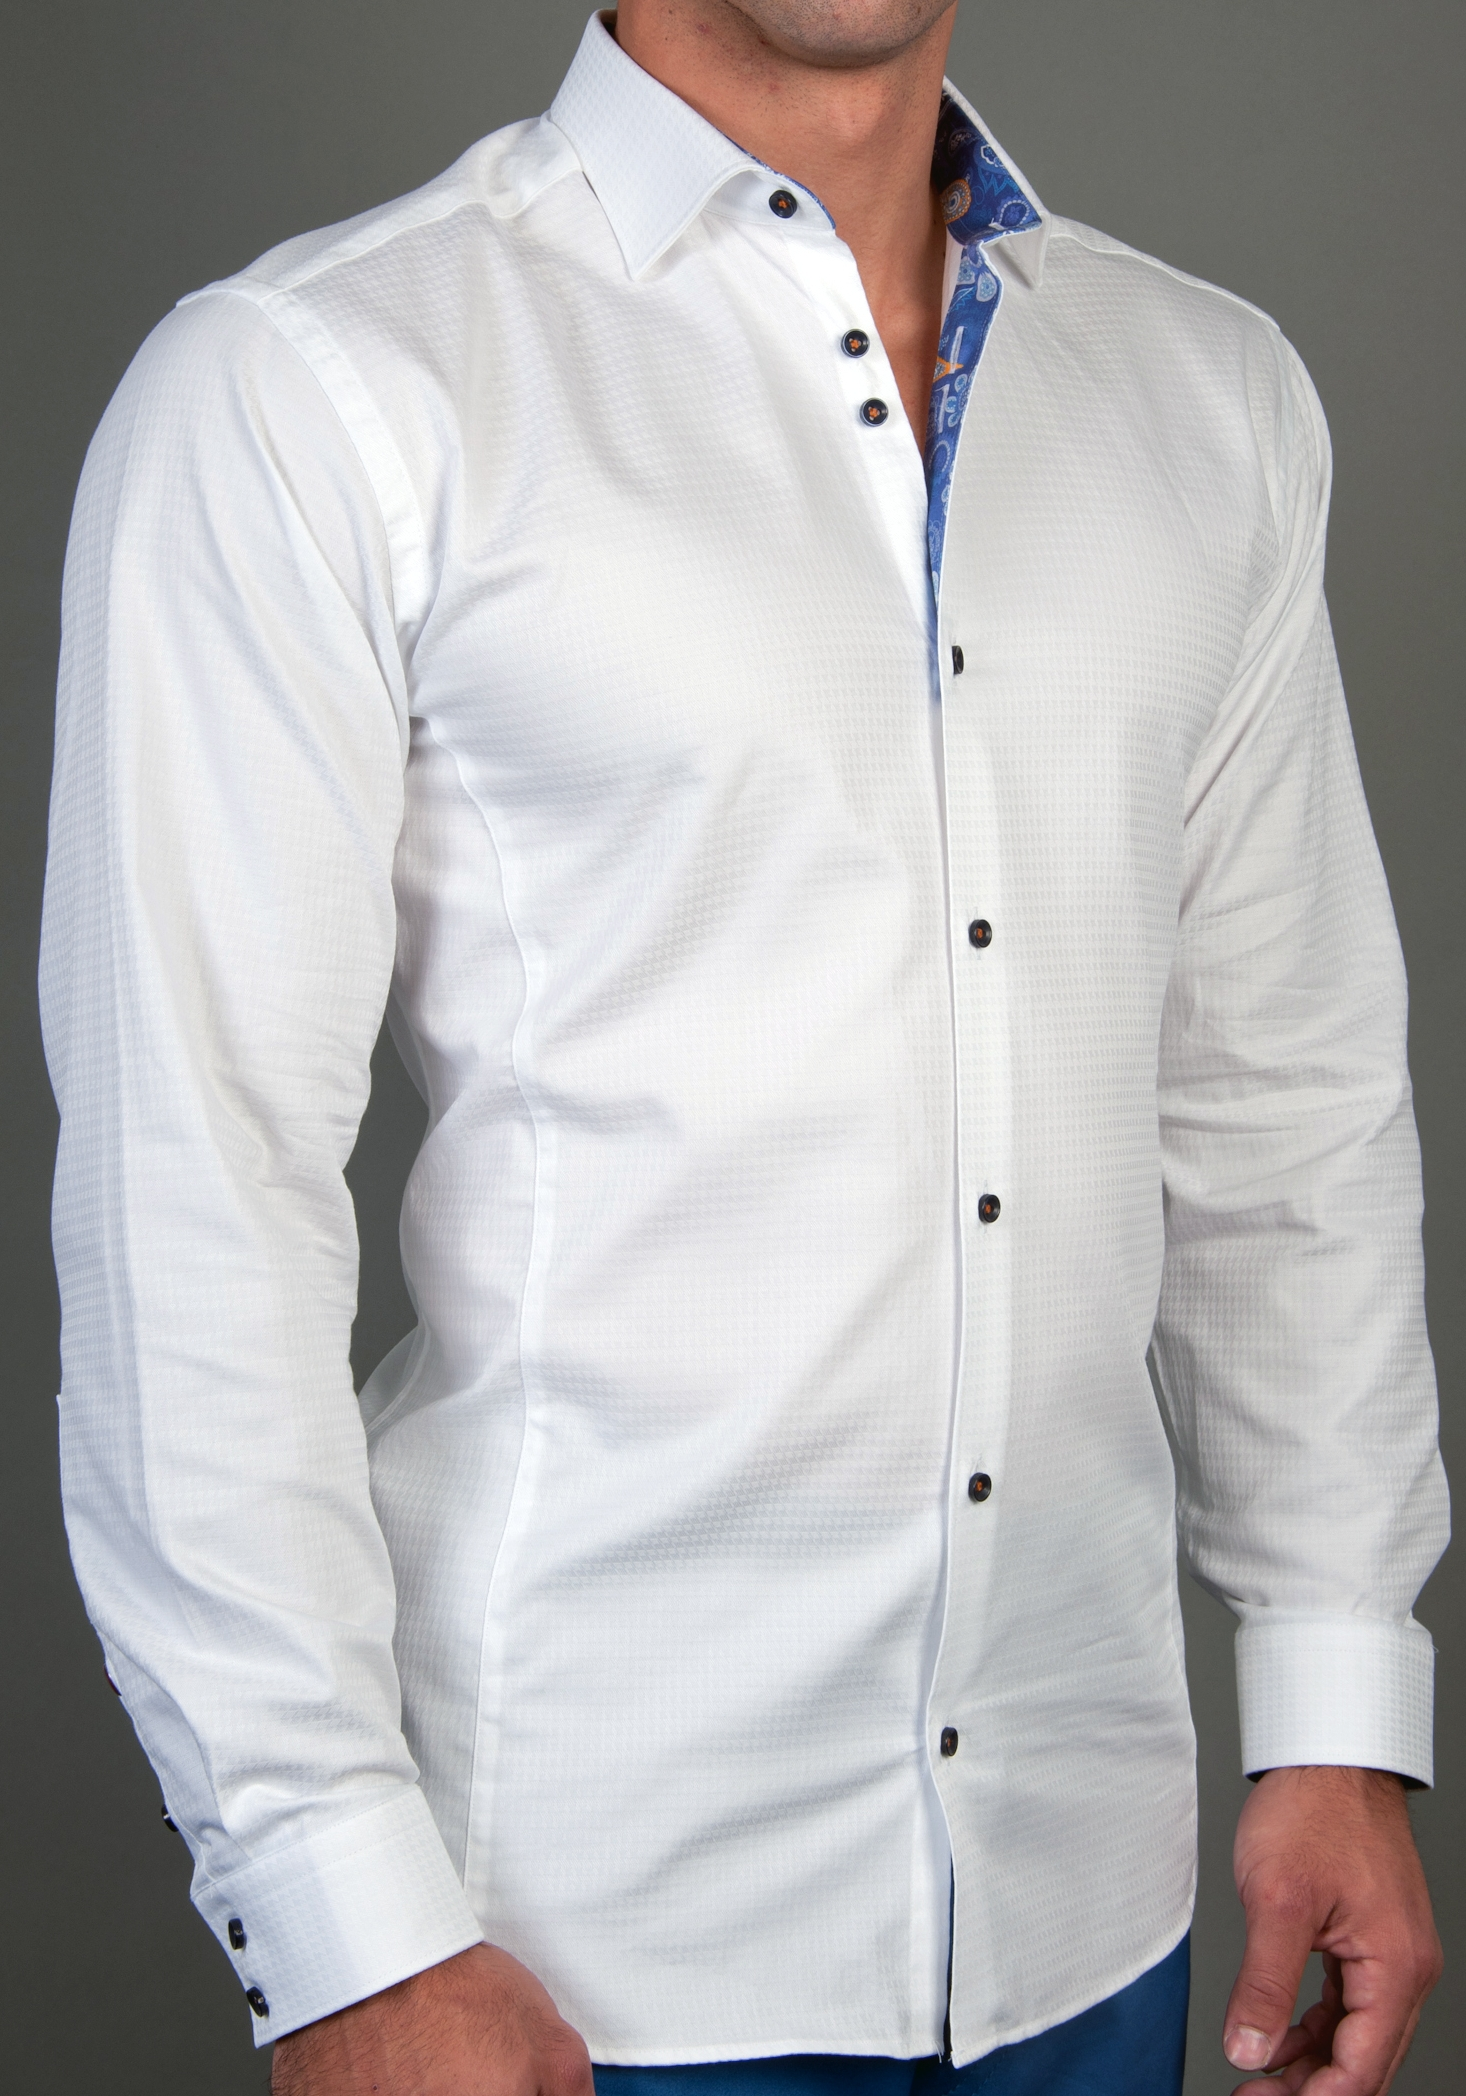 Sep 30,  · buy men shirts online shop india in low price best price cheap price, shirts for men, casual men shirts online, formal men shirt online, New style men shirt online india – Buy Men Shirts in Low Price, shirt in low price, new fashion style shirts india, online Shirts in all ranges. hugs collection of shirt for men.